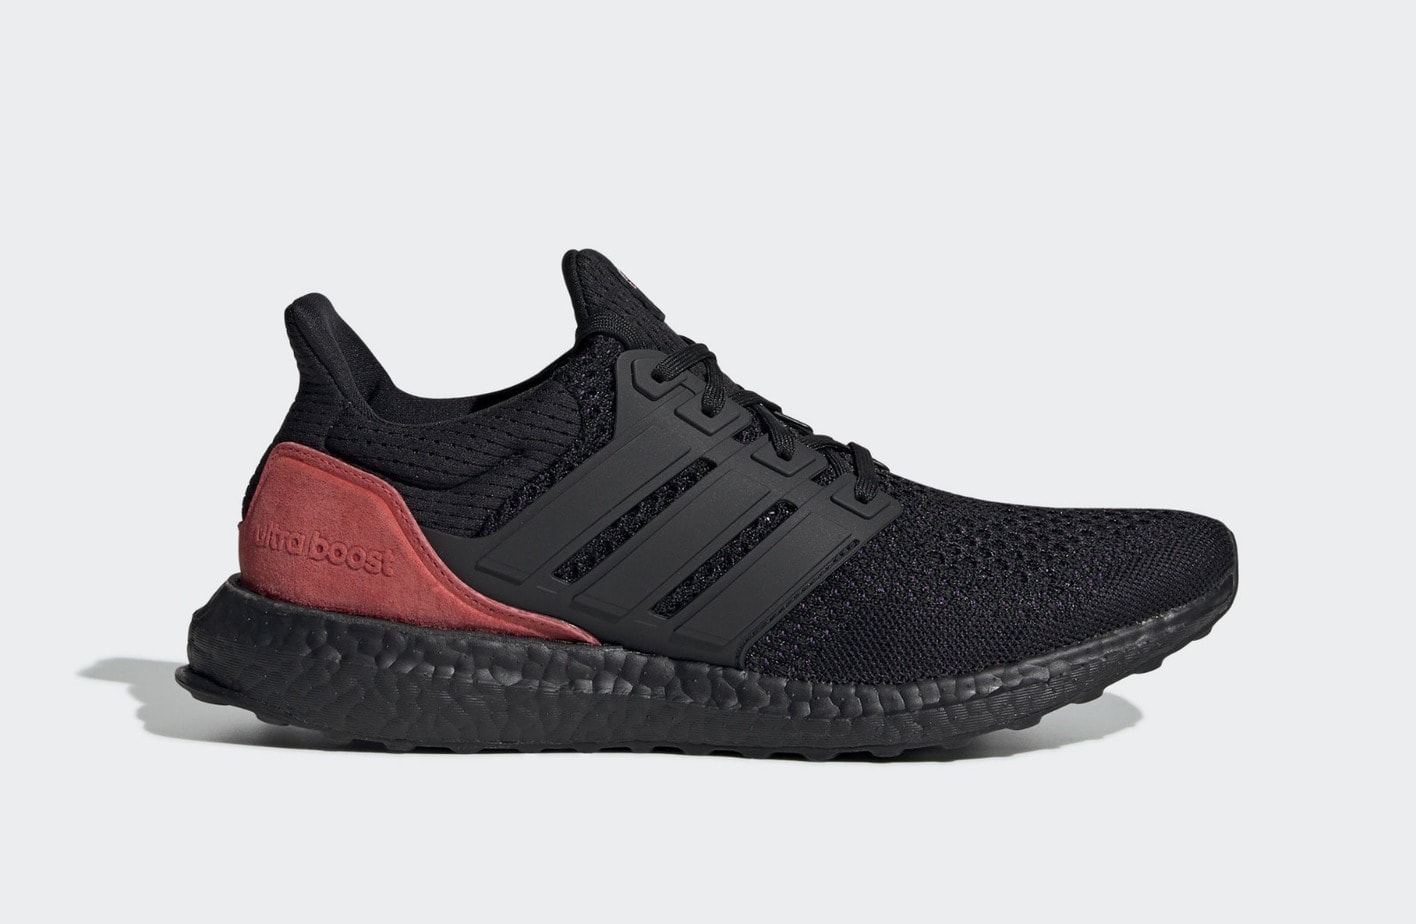 e5e4c832f34 adidas has an interesting new look for the Ultra Boost. Early this week